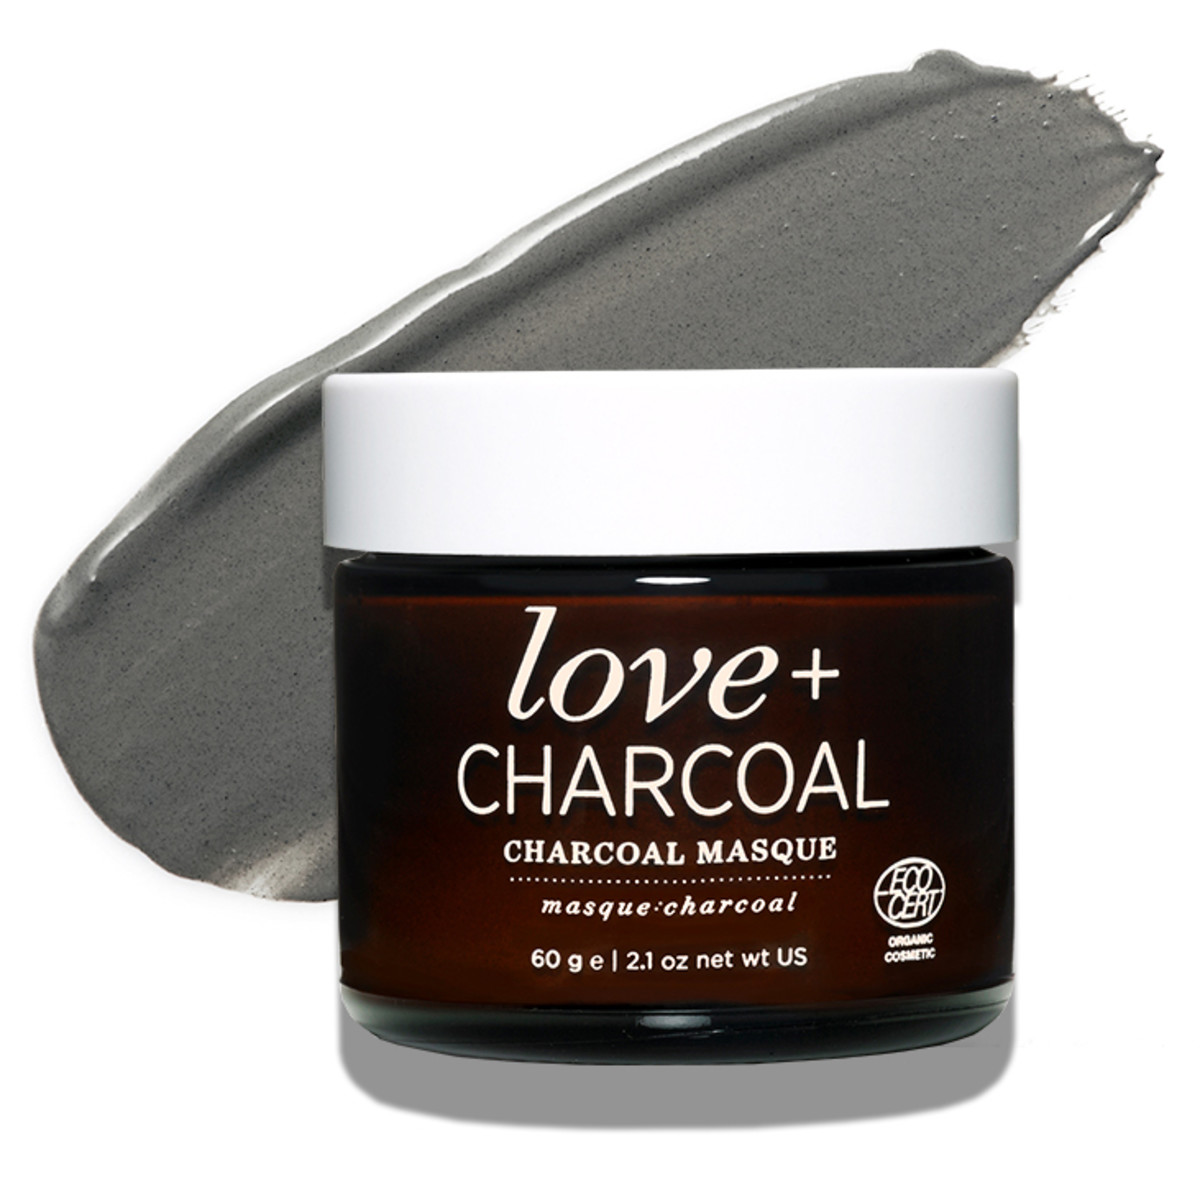 love_and_charcoal_masque